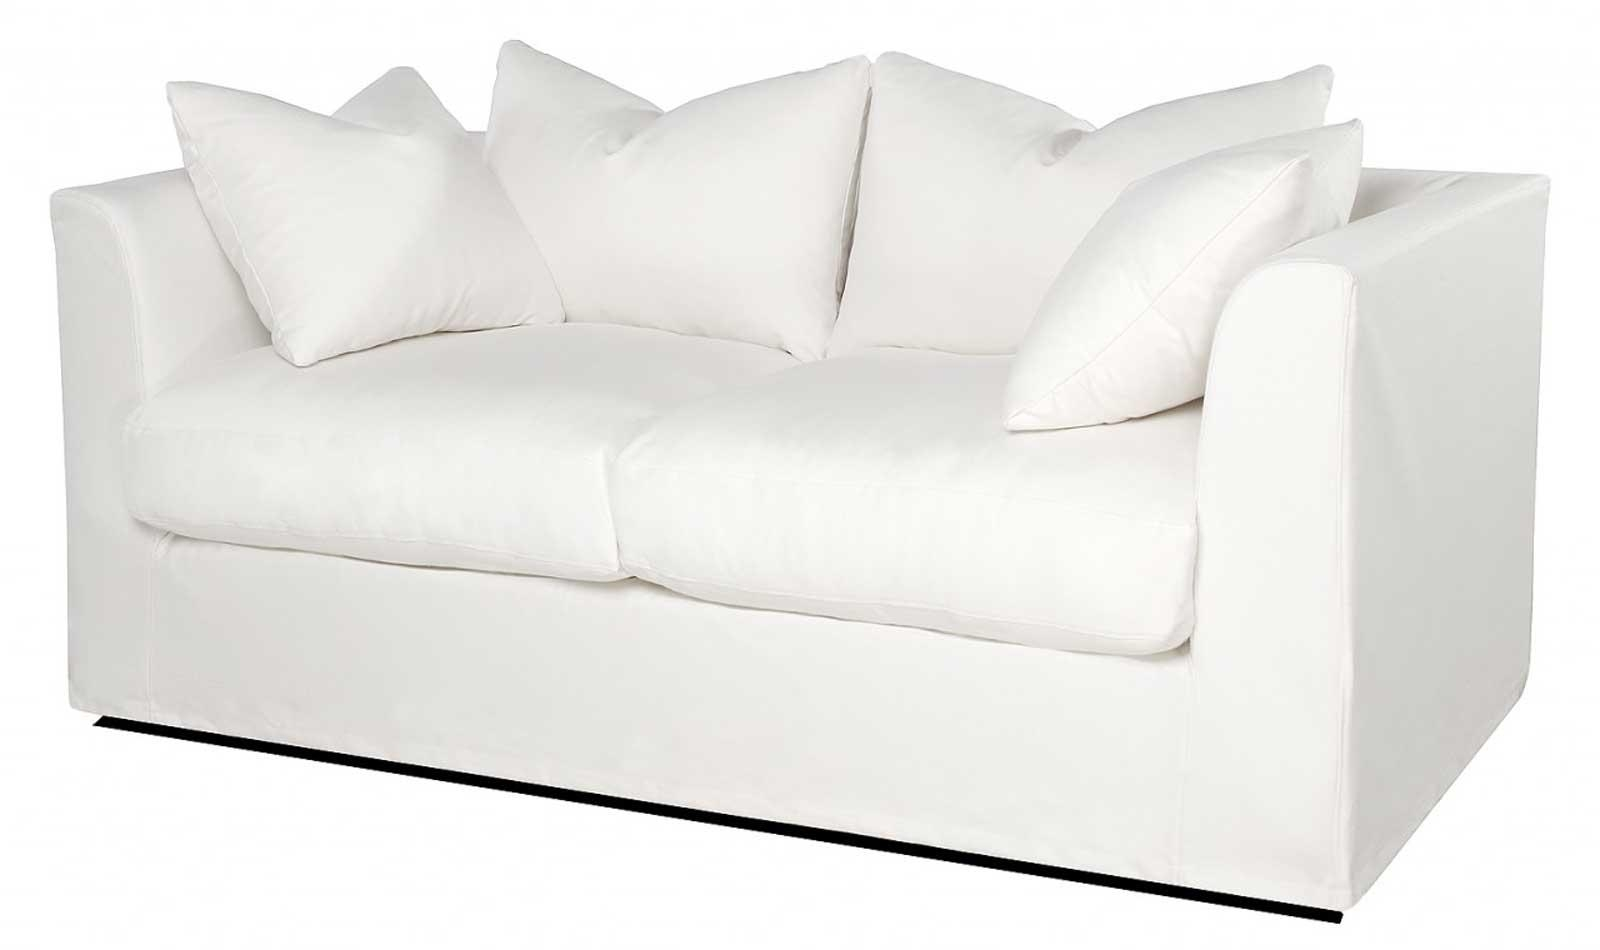 Sleeper Sofa Slipcover Upholstery White Sleeper Sofas Sectional Inside Slipcovers For Sleeper Sofas (Image 10 of 20)